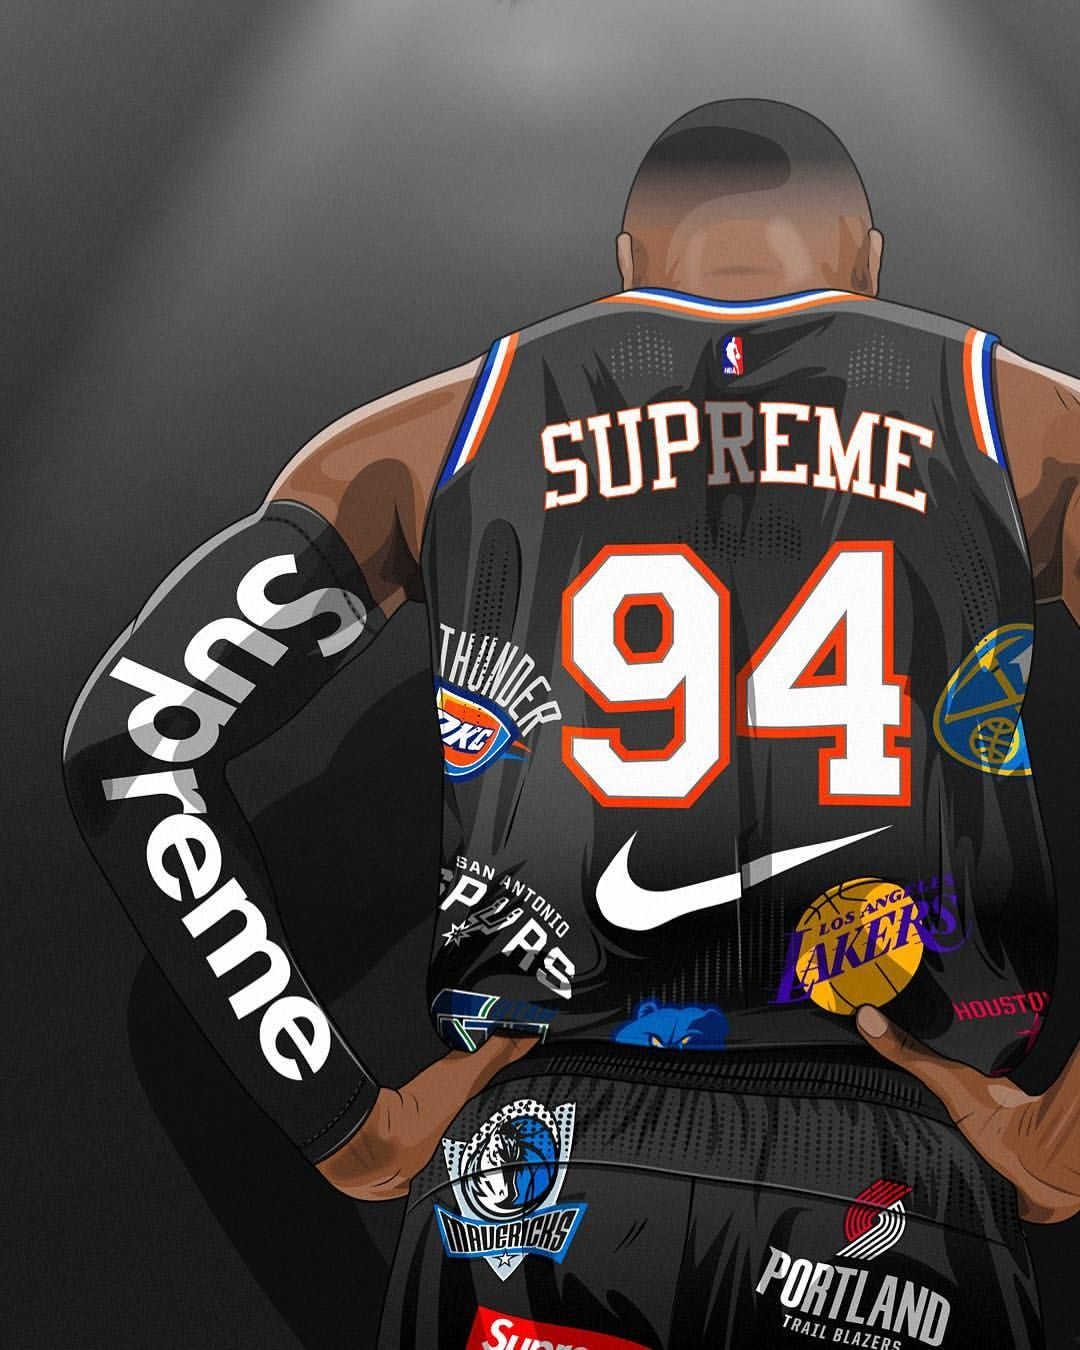 Pin by James2k00 on Hypebeast art and other lit art Nba 1080x1350